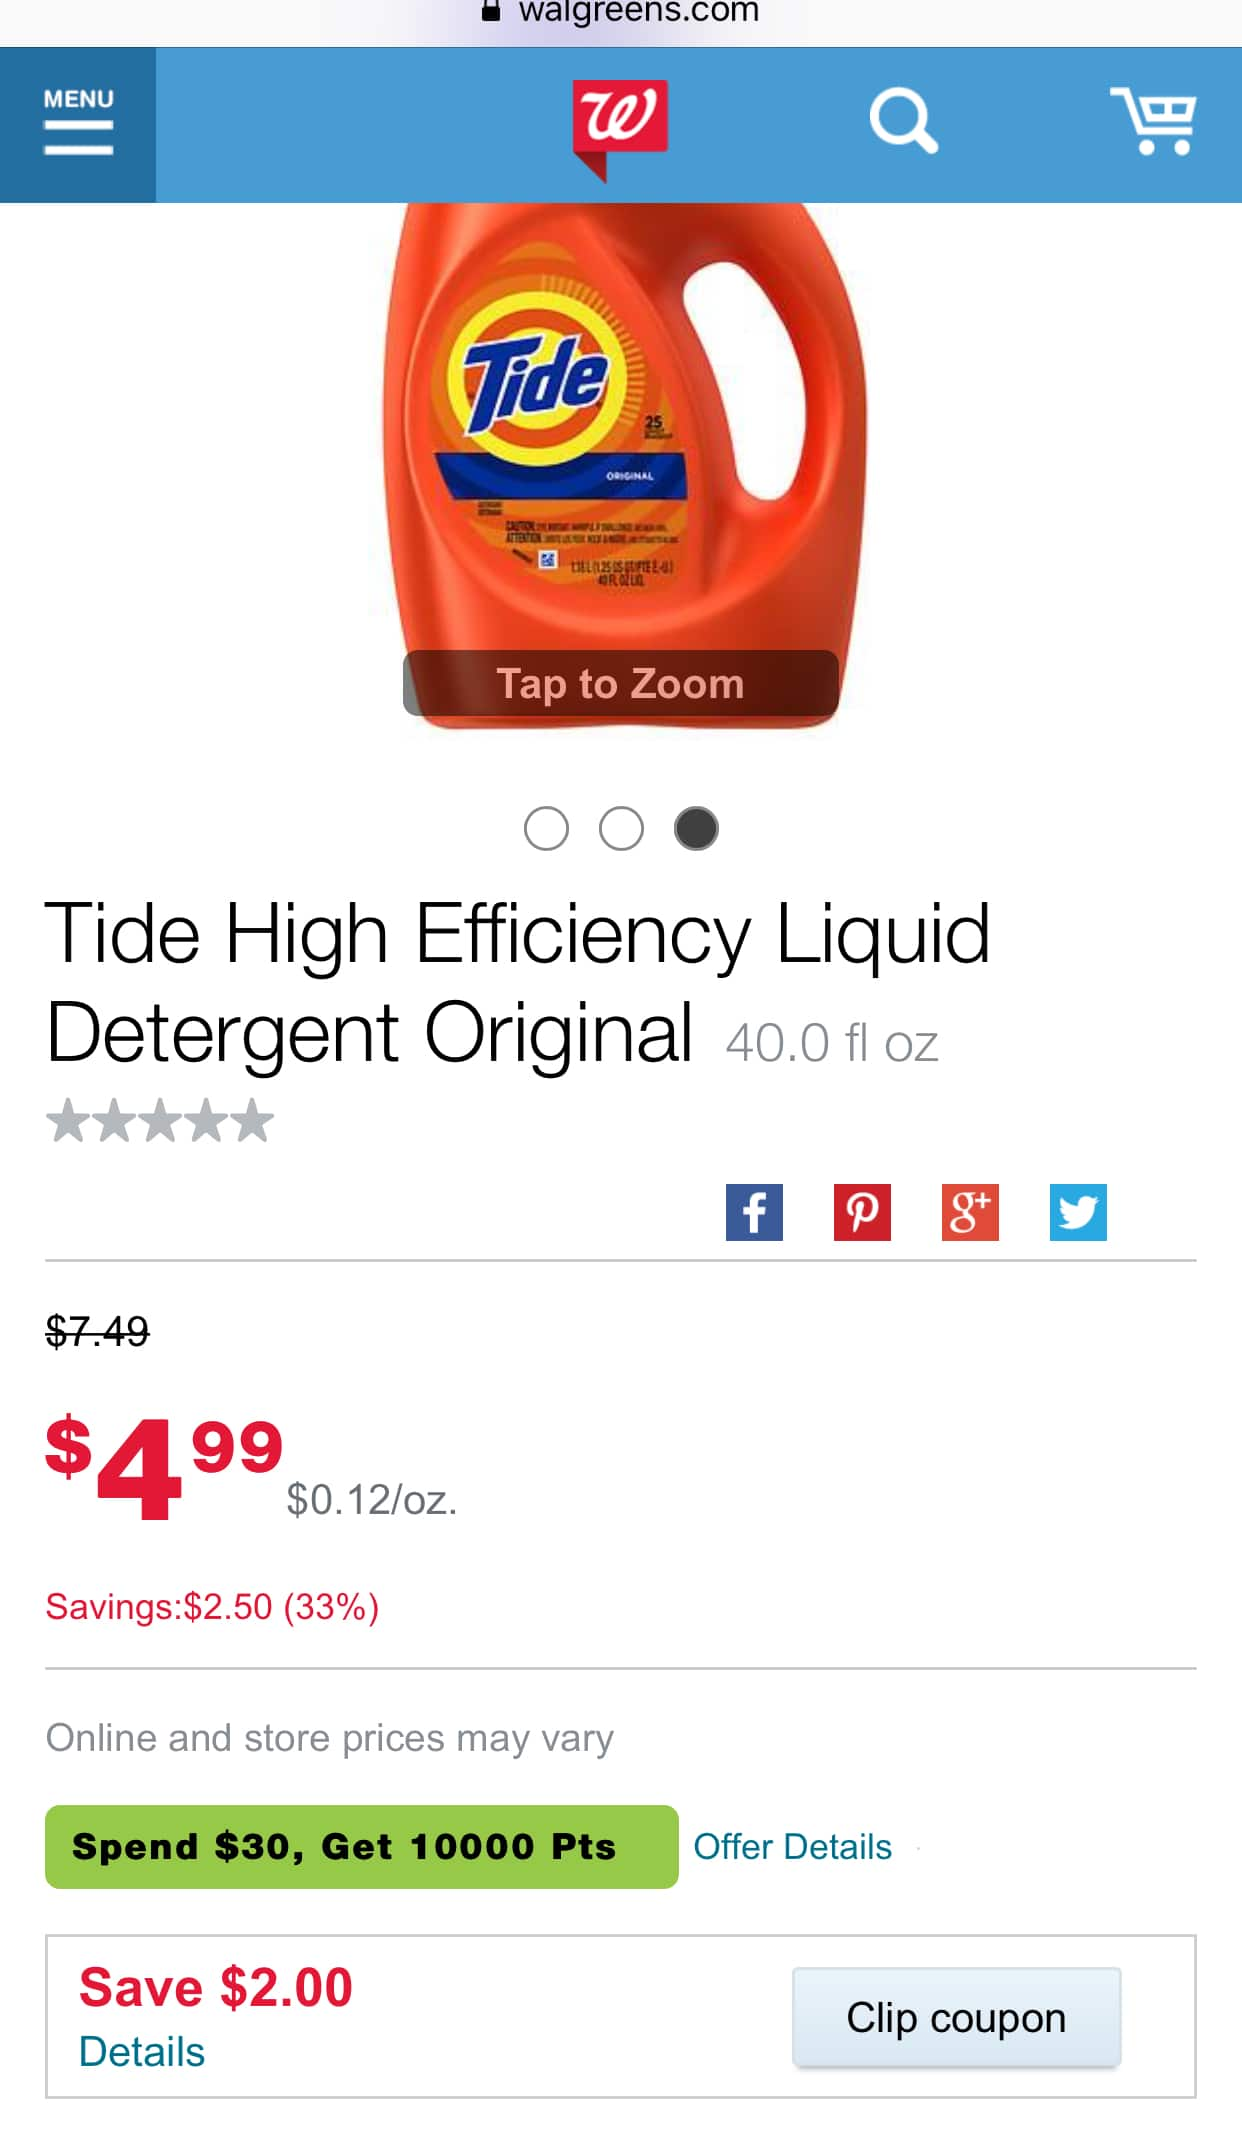 Tide 37-Oz. And 40-Oz. Detergent For $2.99 at Walgreen